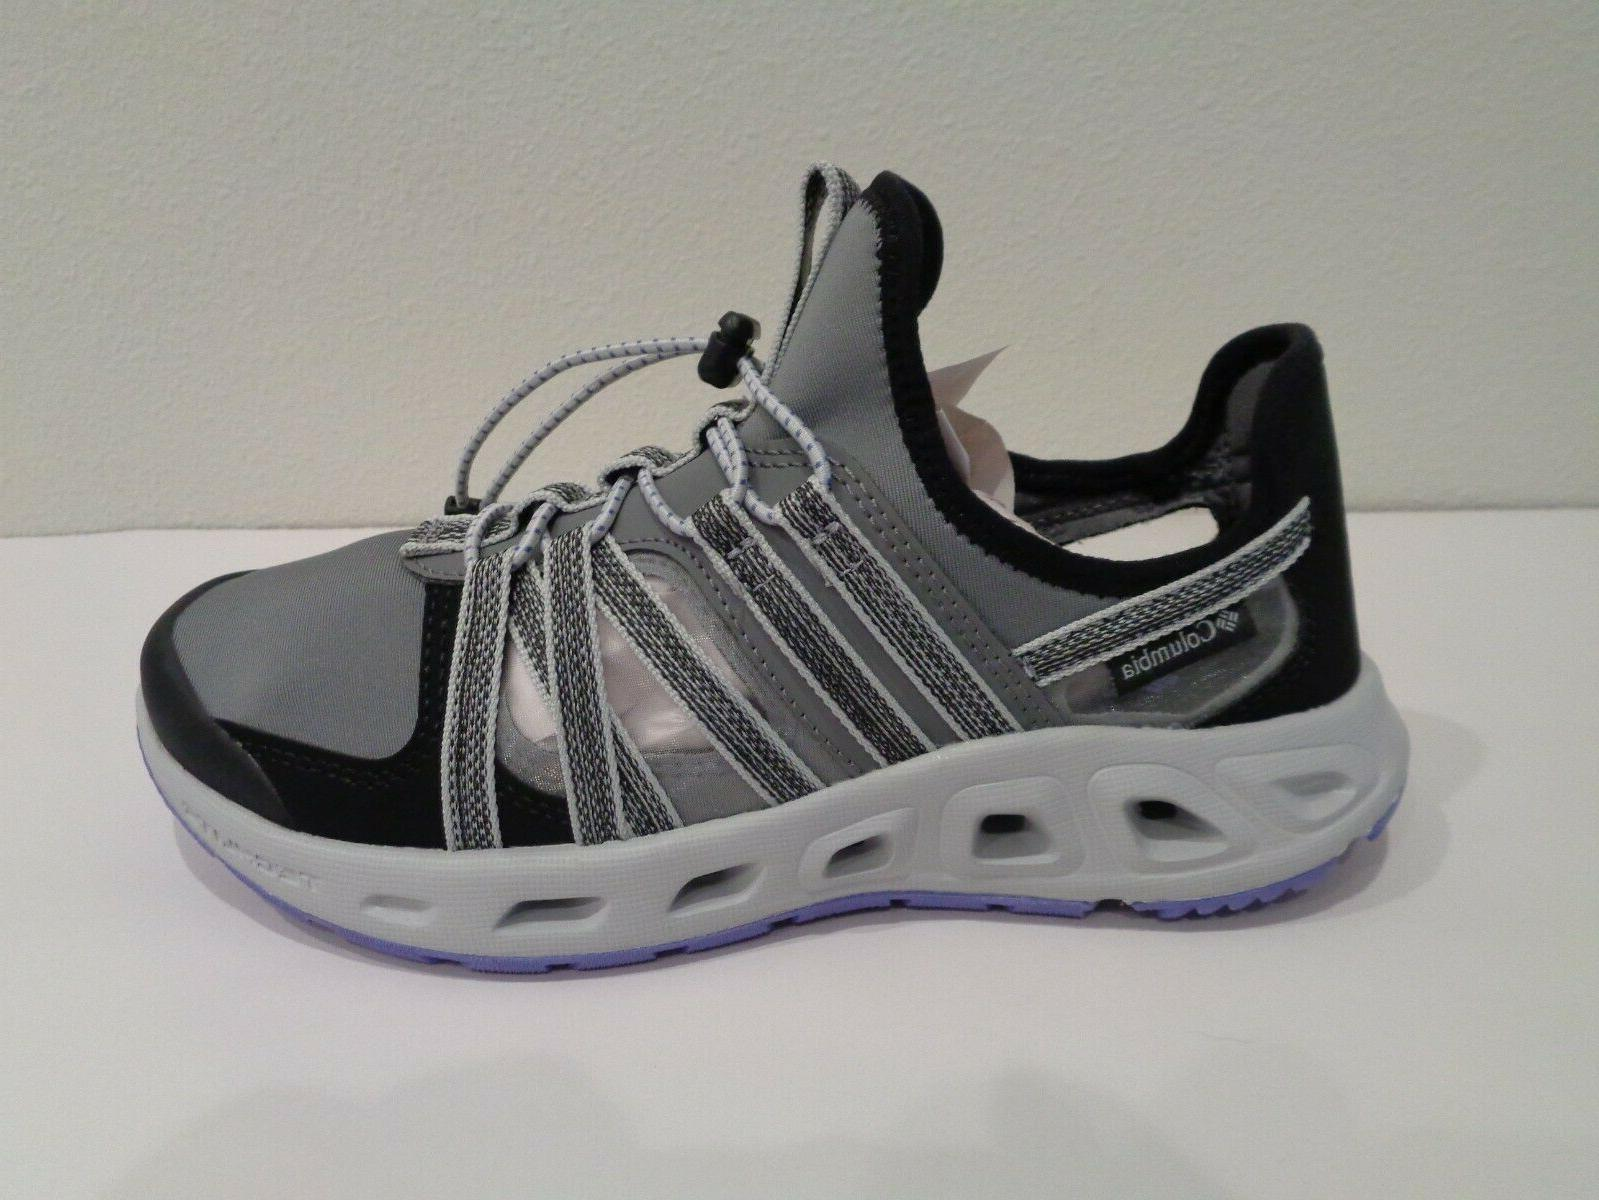 Columbia Size 10 OKOLONA Grey Toggle Sneakers New Shoes